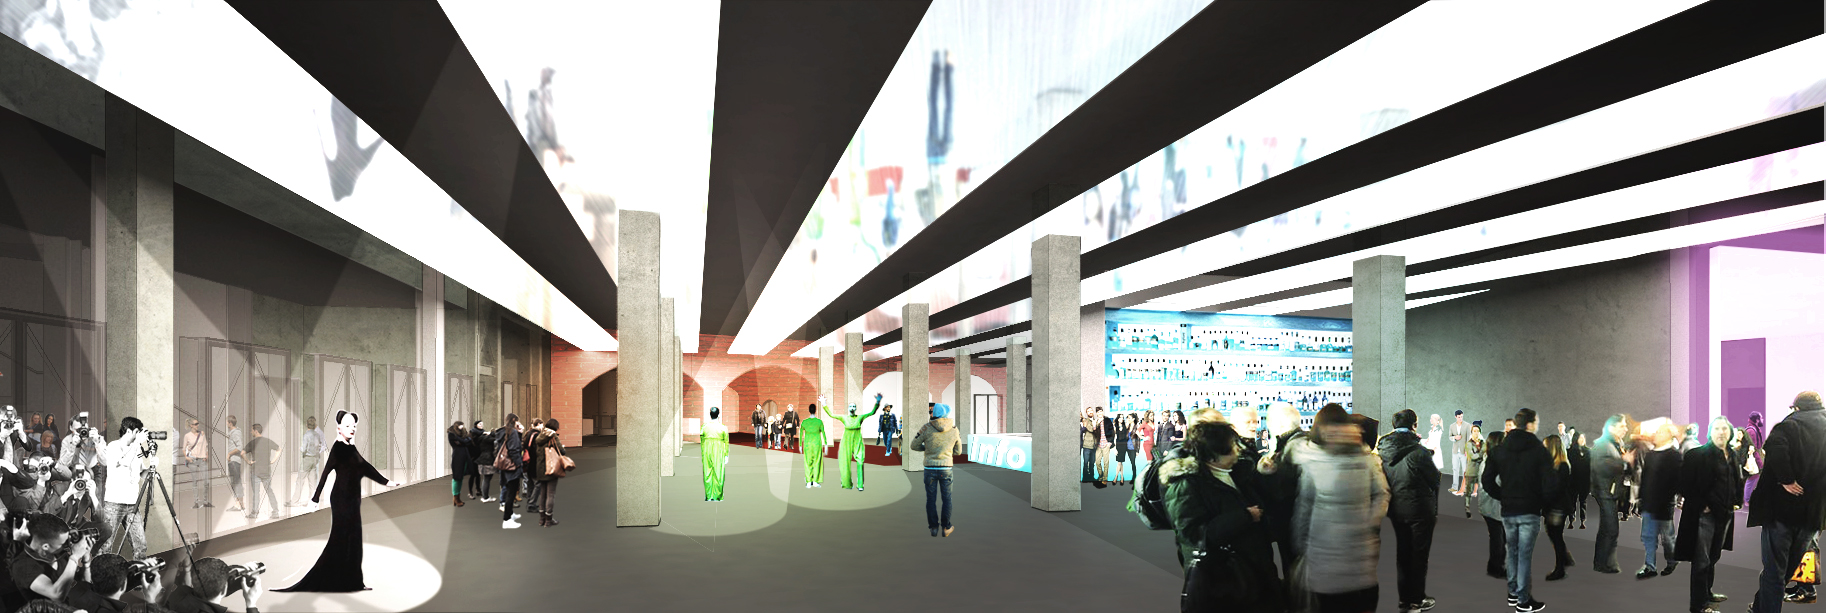 A rendering for Factory Manchester by OMA. Copyright: OMA. Image Courtesy Factory Manchester